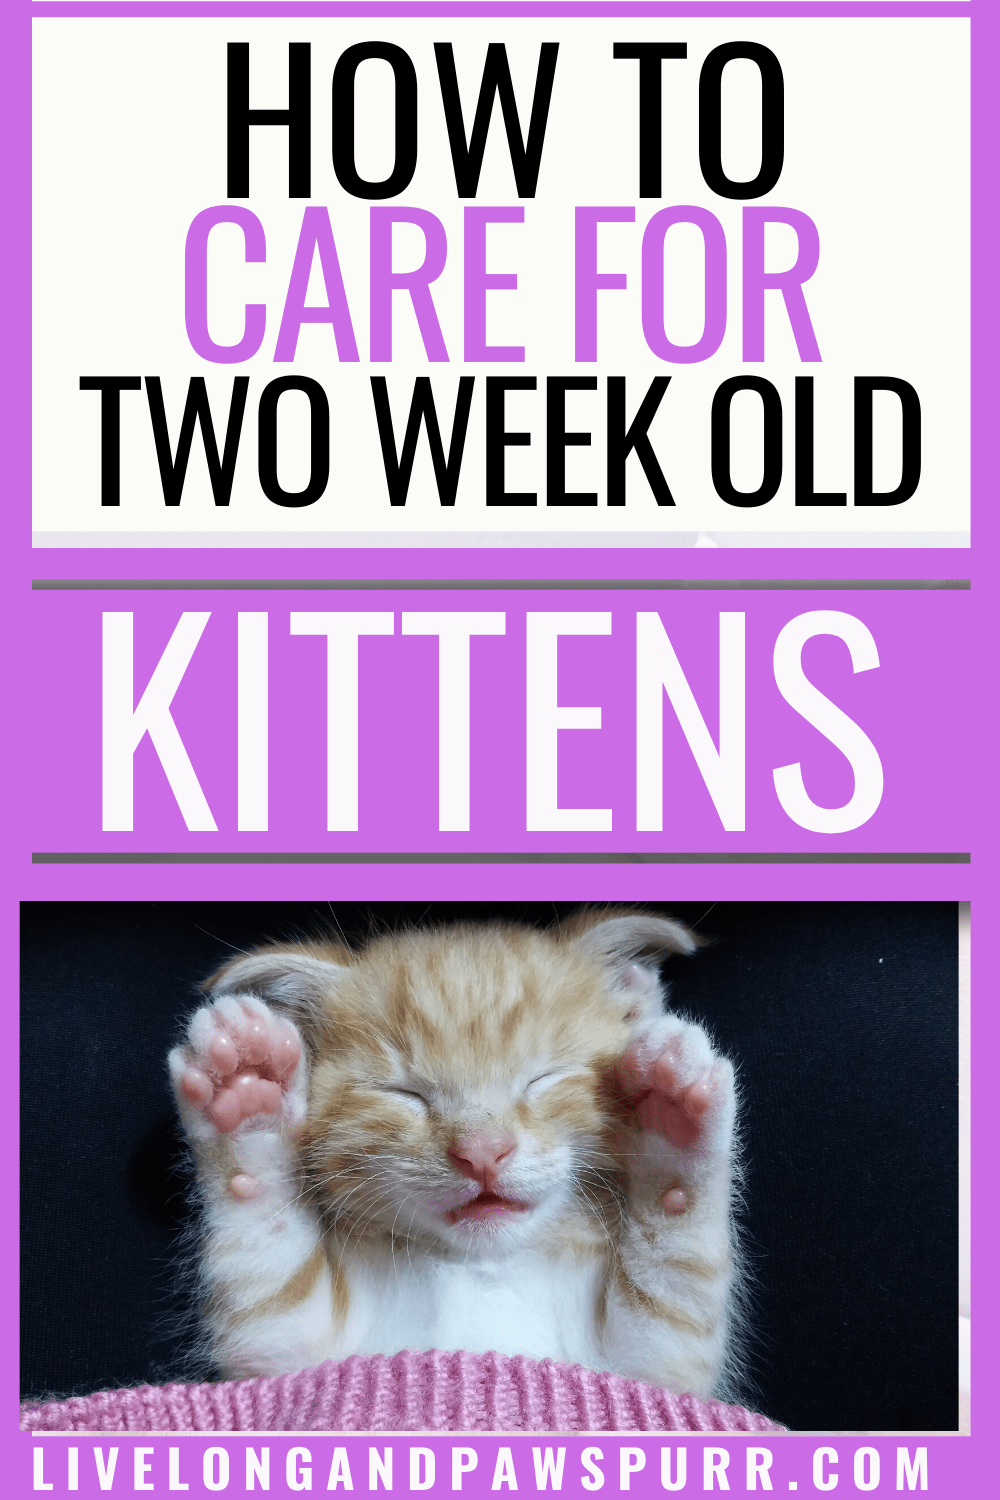 Everything You Need To Know About 2 Week Old Kittens In 2020 Cool Cat Trees Kittens Pet Mom